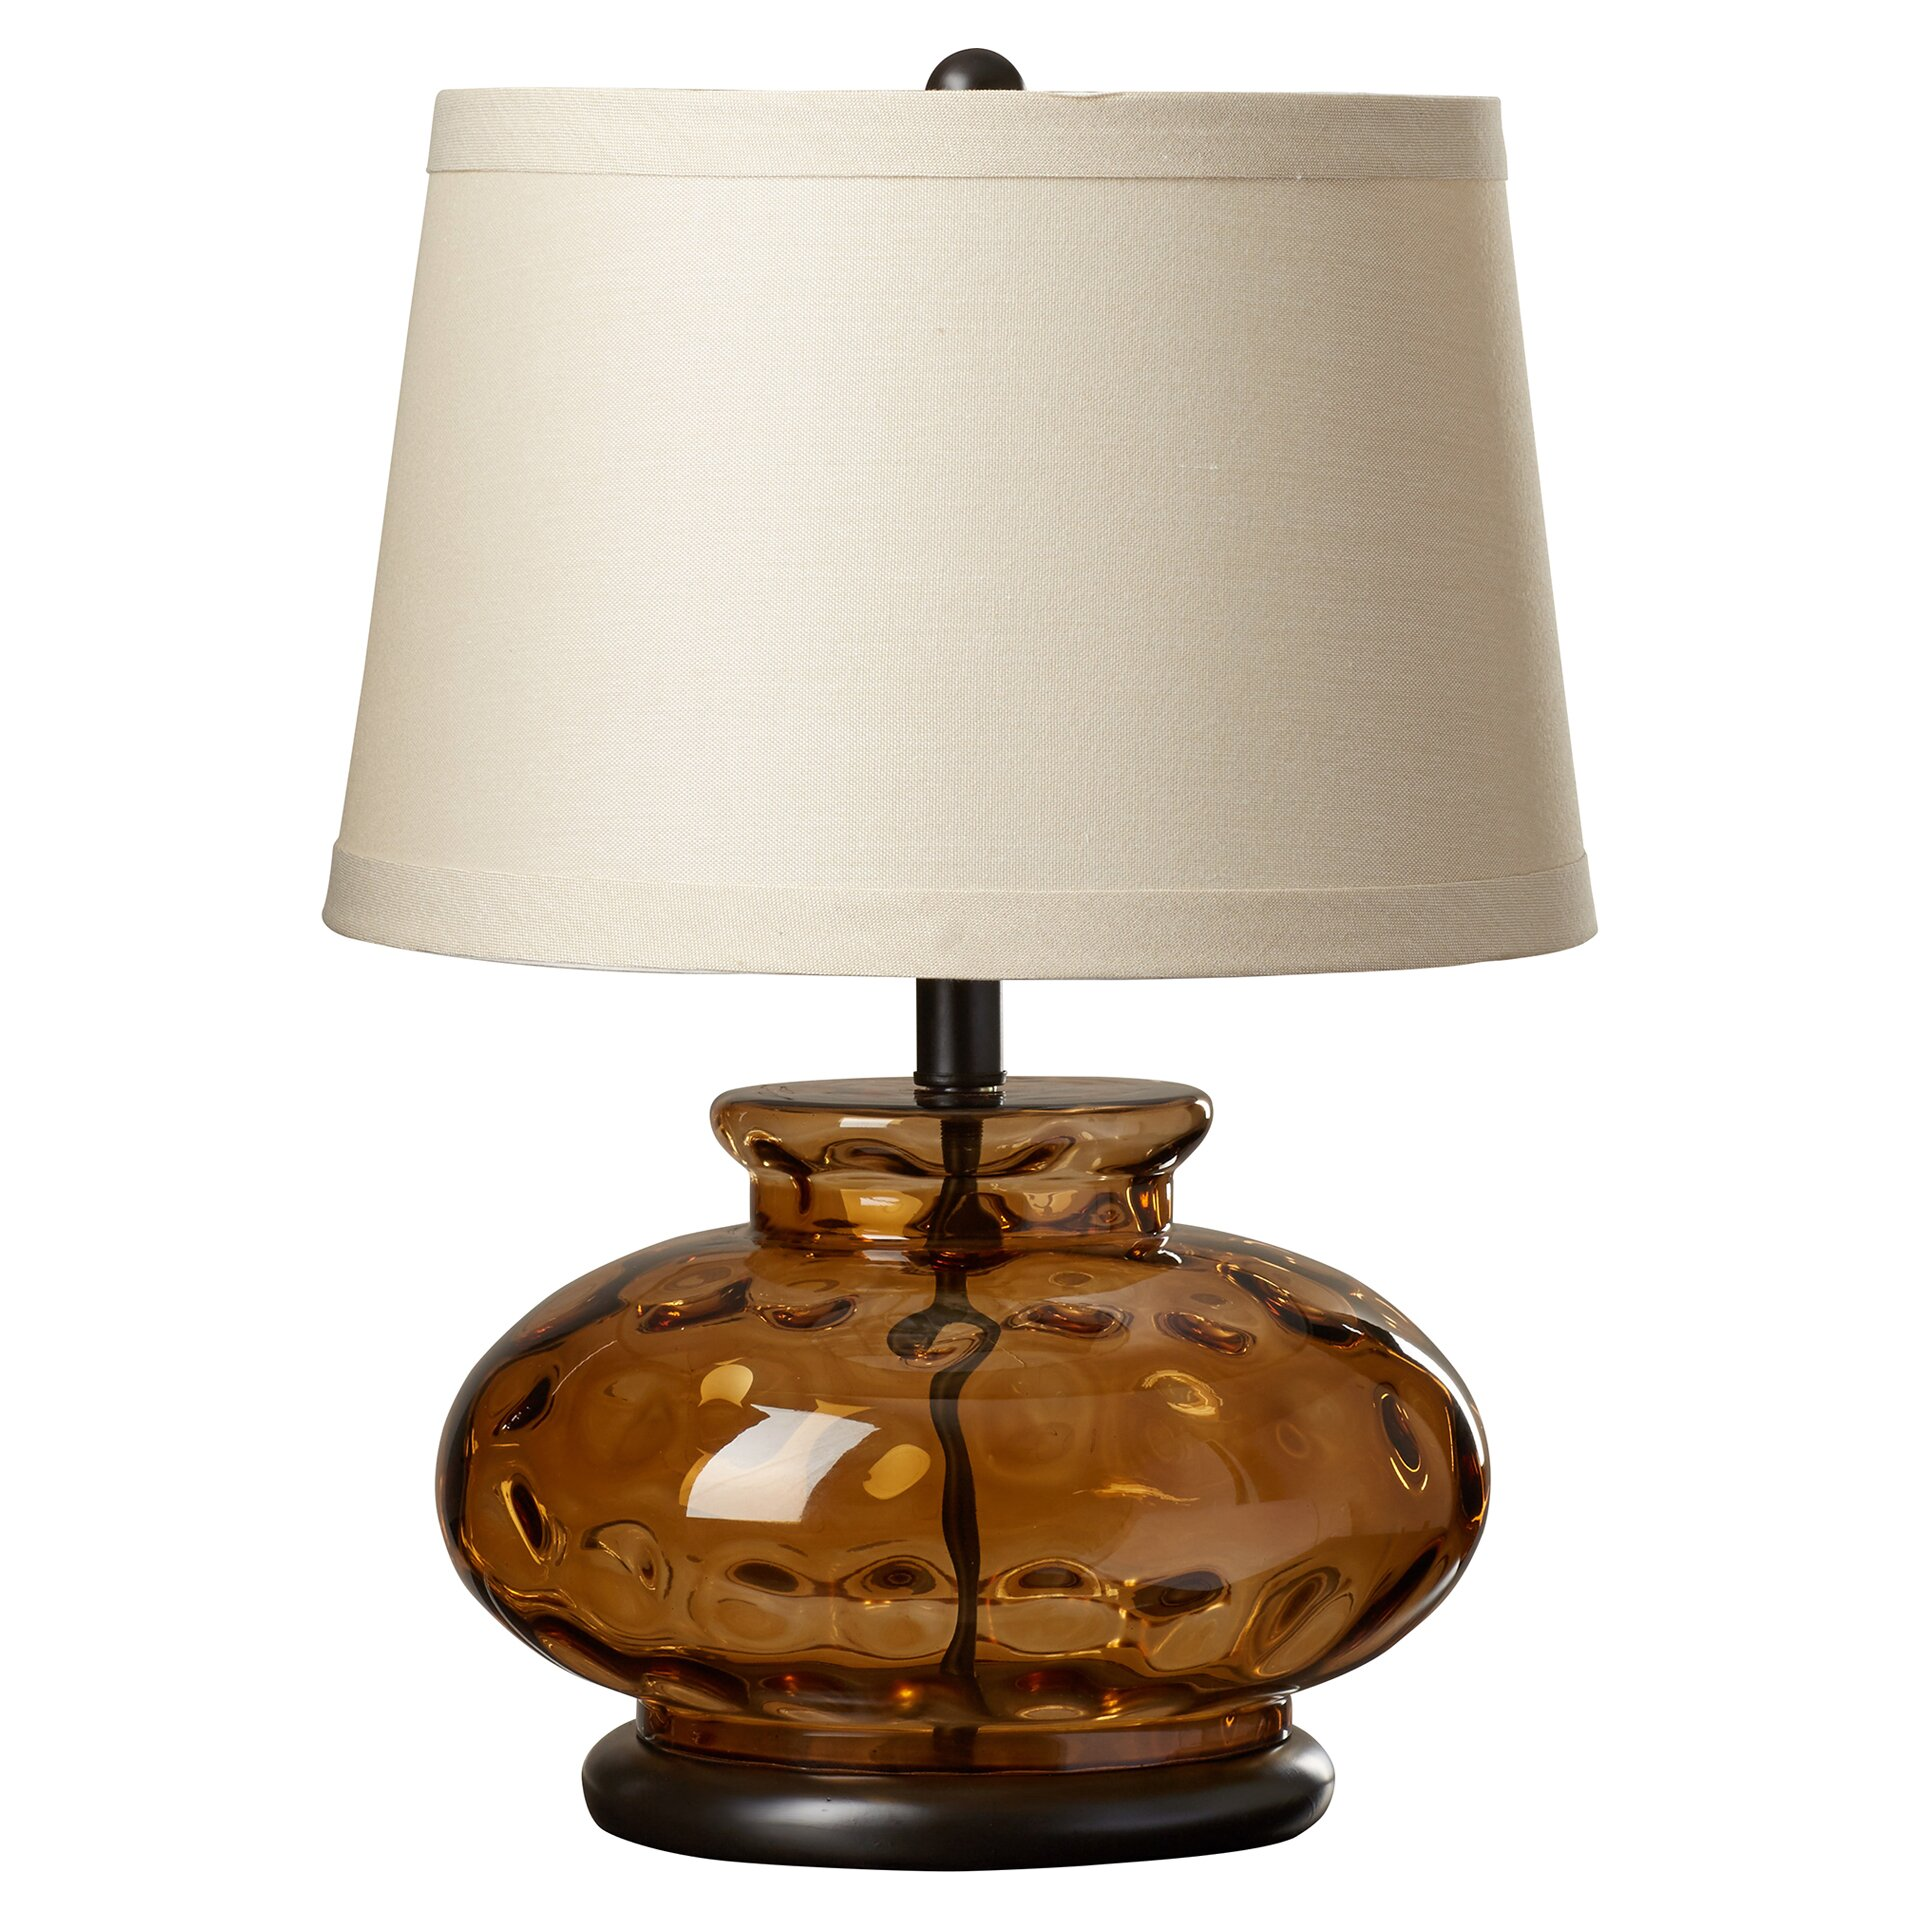 beachcrest home stanford 21 h table lamp with empire. Black Bedroom Furniture Sets. Home Design Ideas